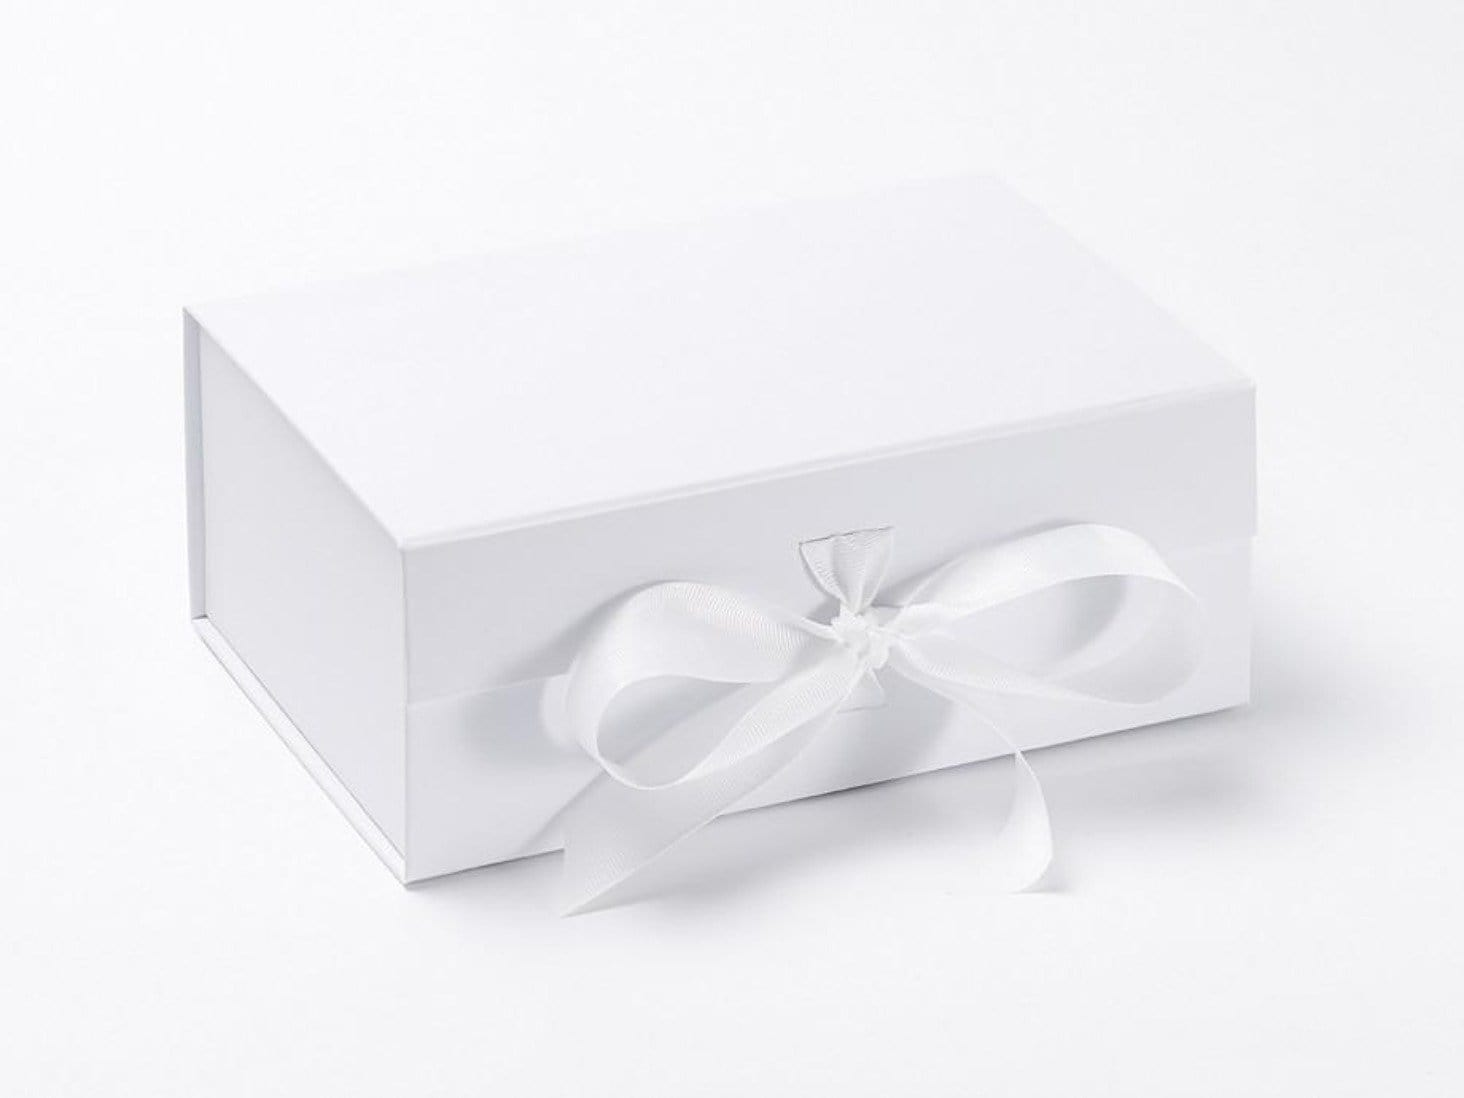 White A5 Deep Collapsible Gift Box sample with fixed ribbon ties